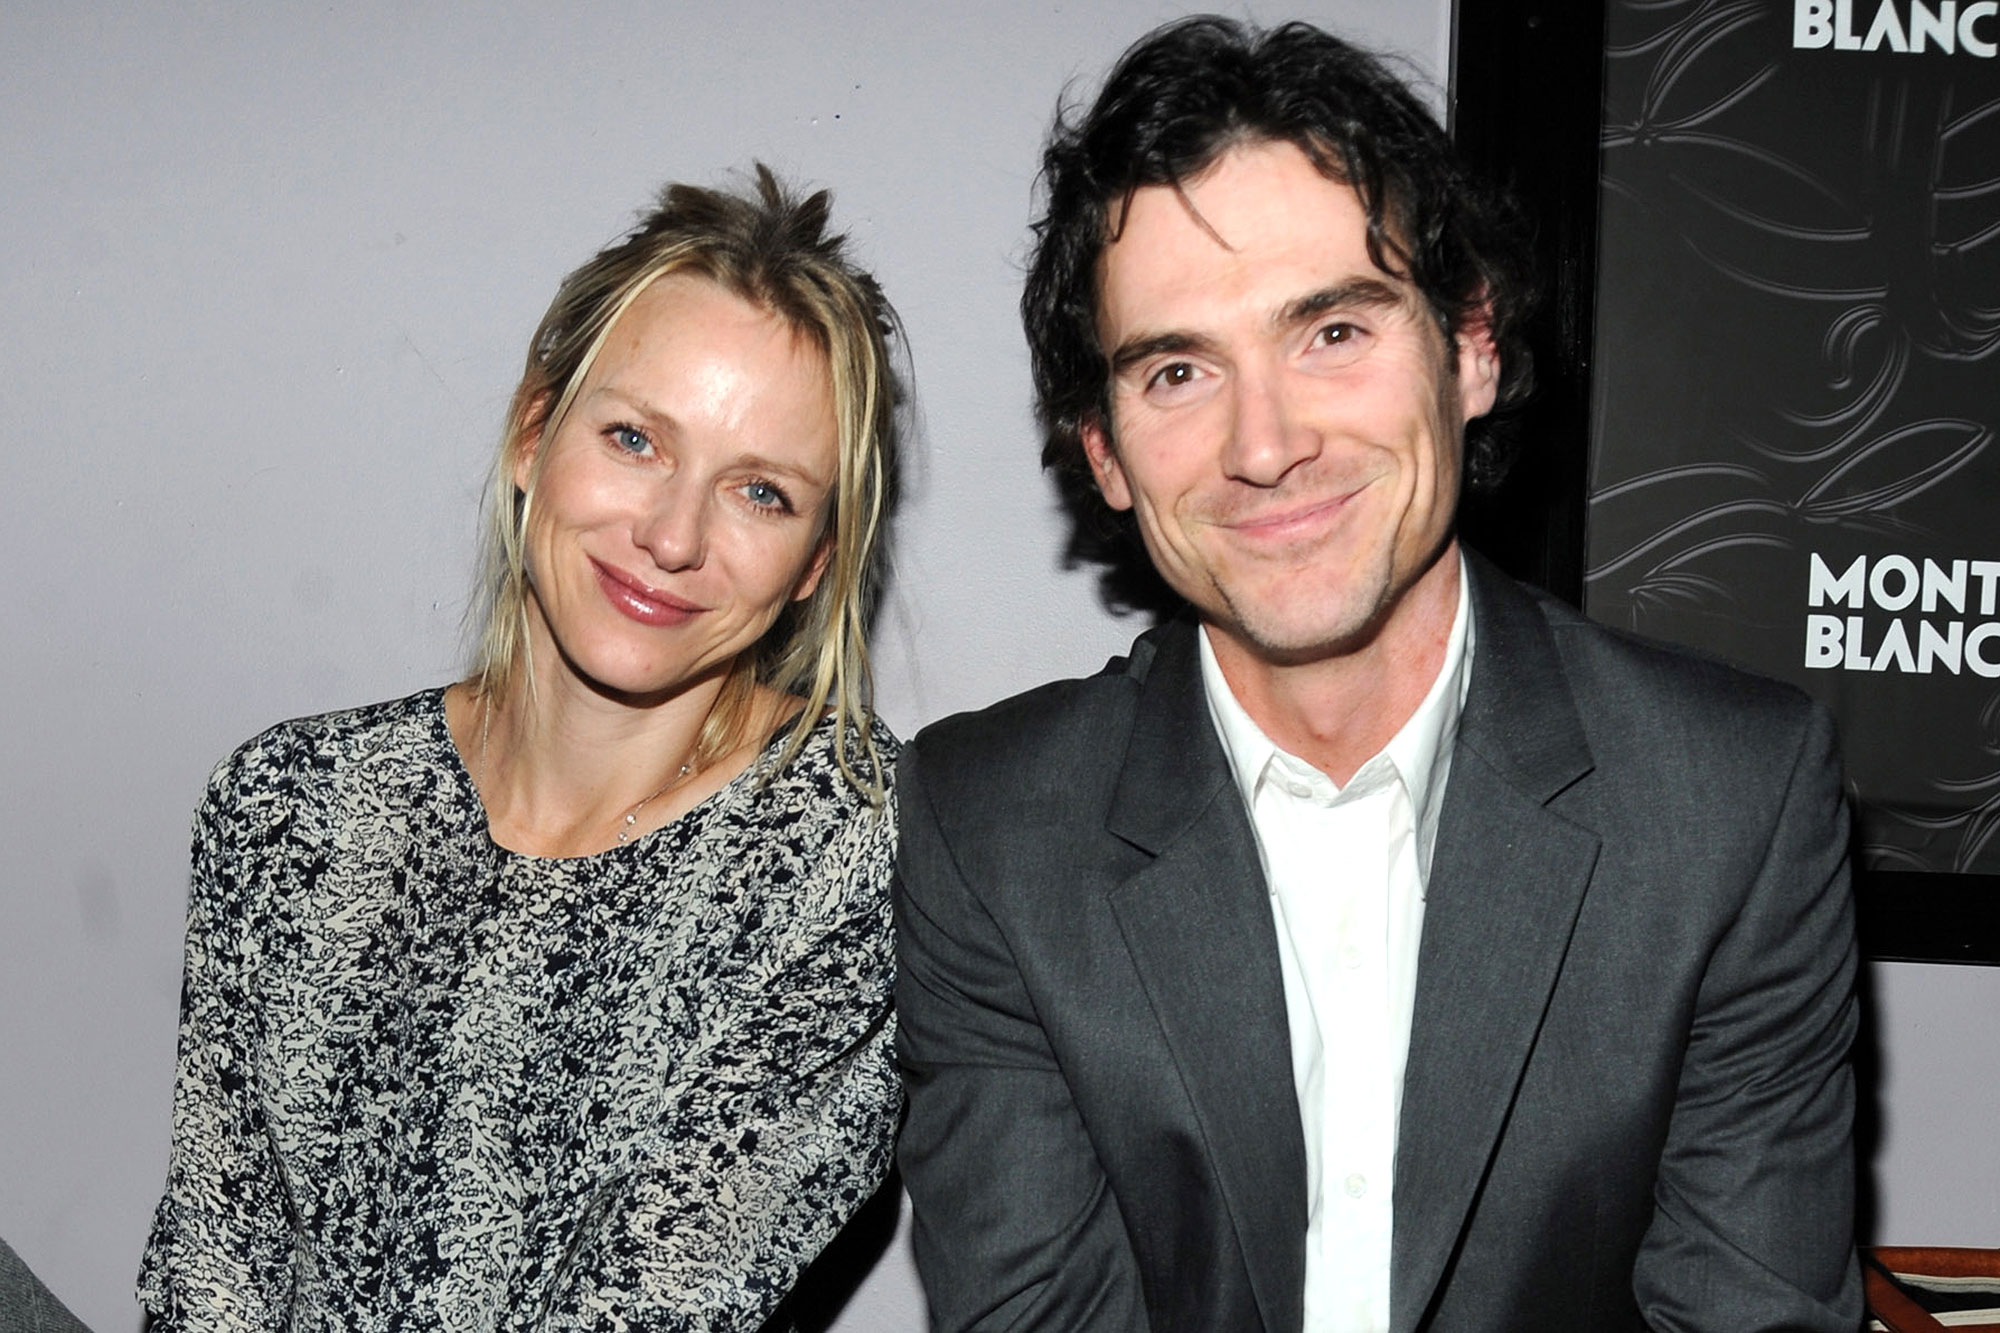 naomi-watts-billy-Crudup